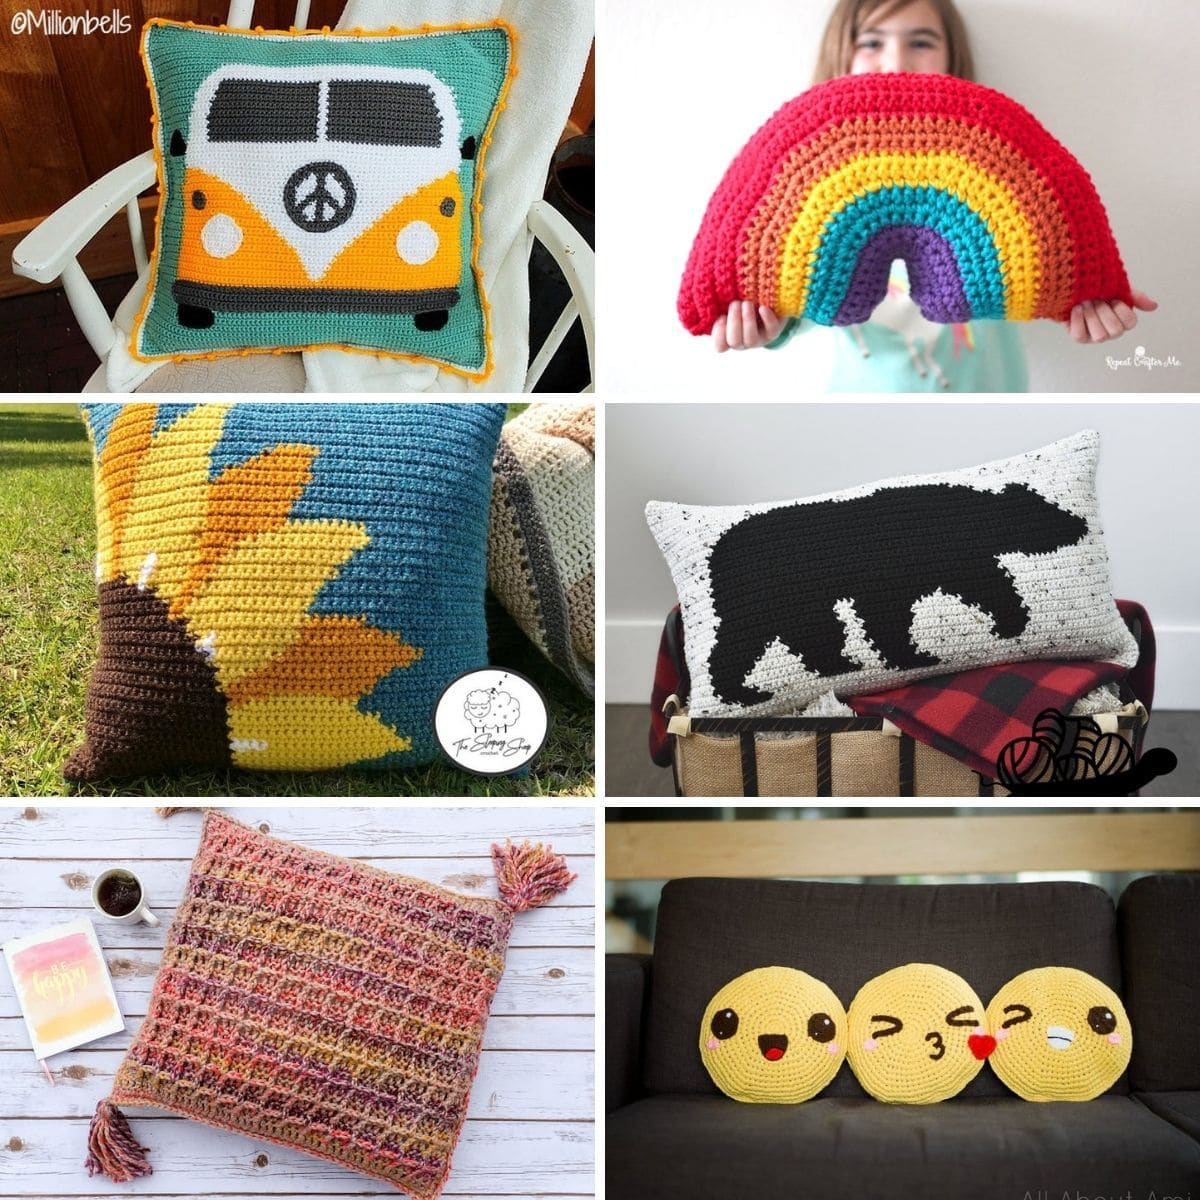 Crochet pillow collage image